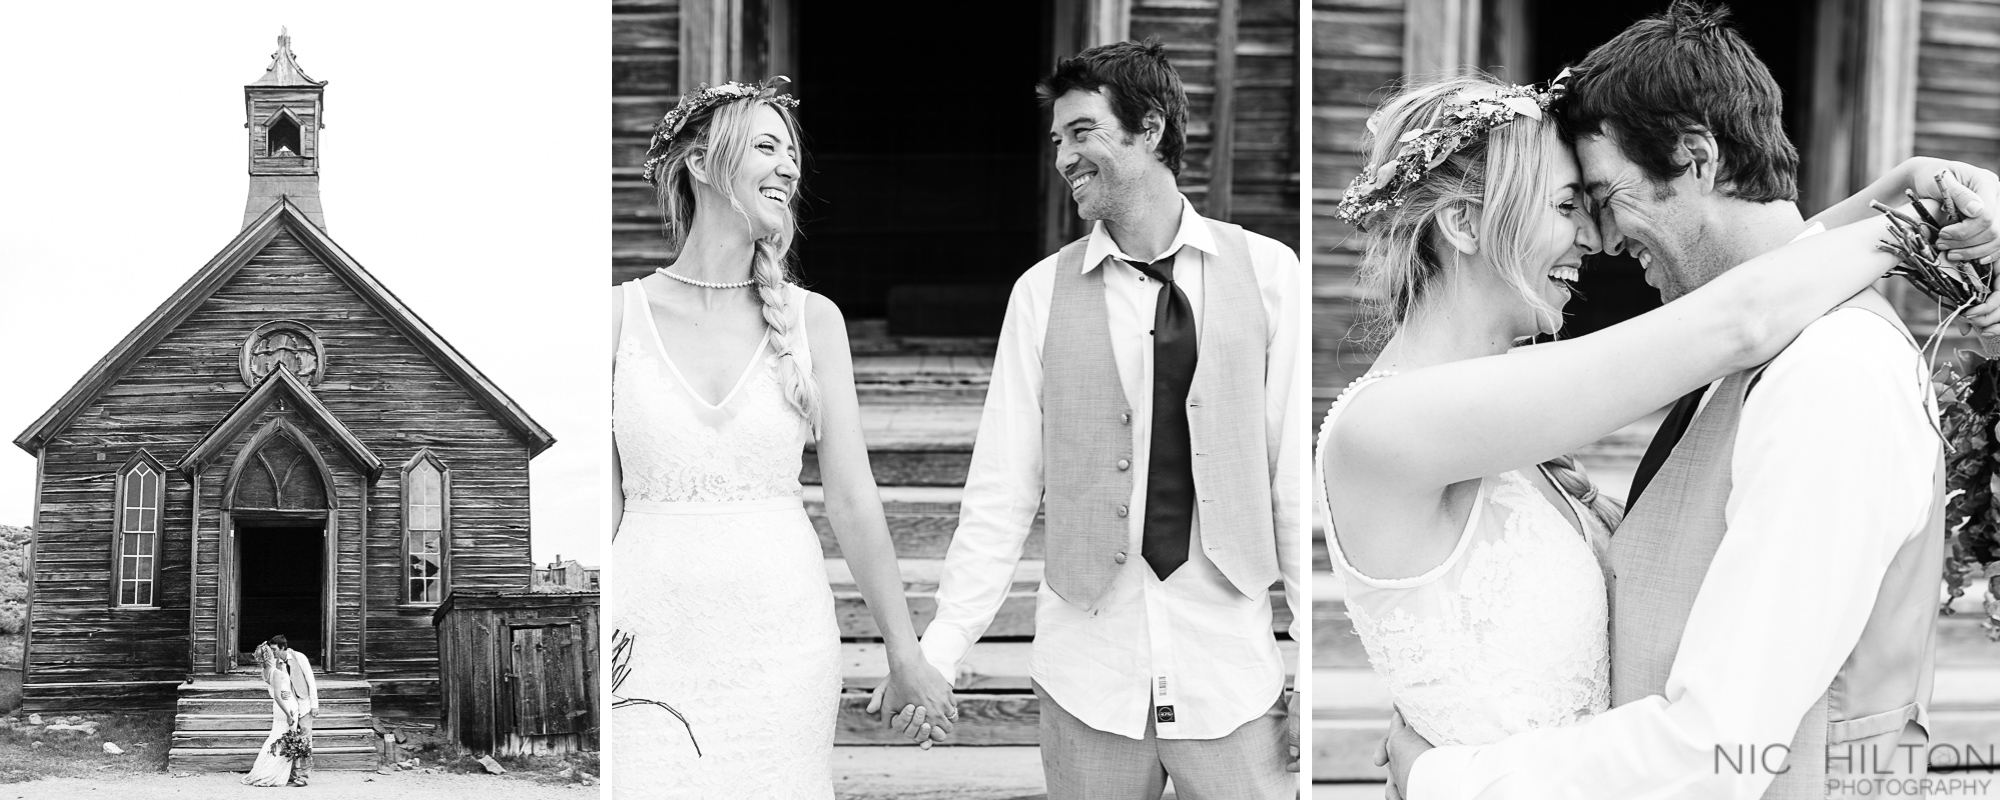 Bodie-Ghost-Town-Wedding-Photography.jpg